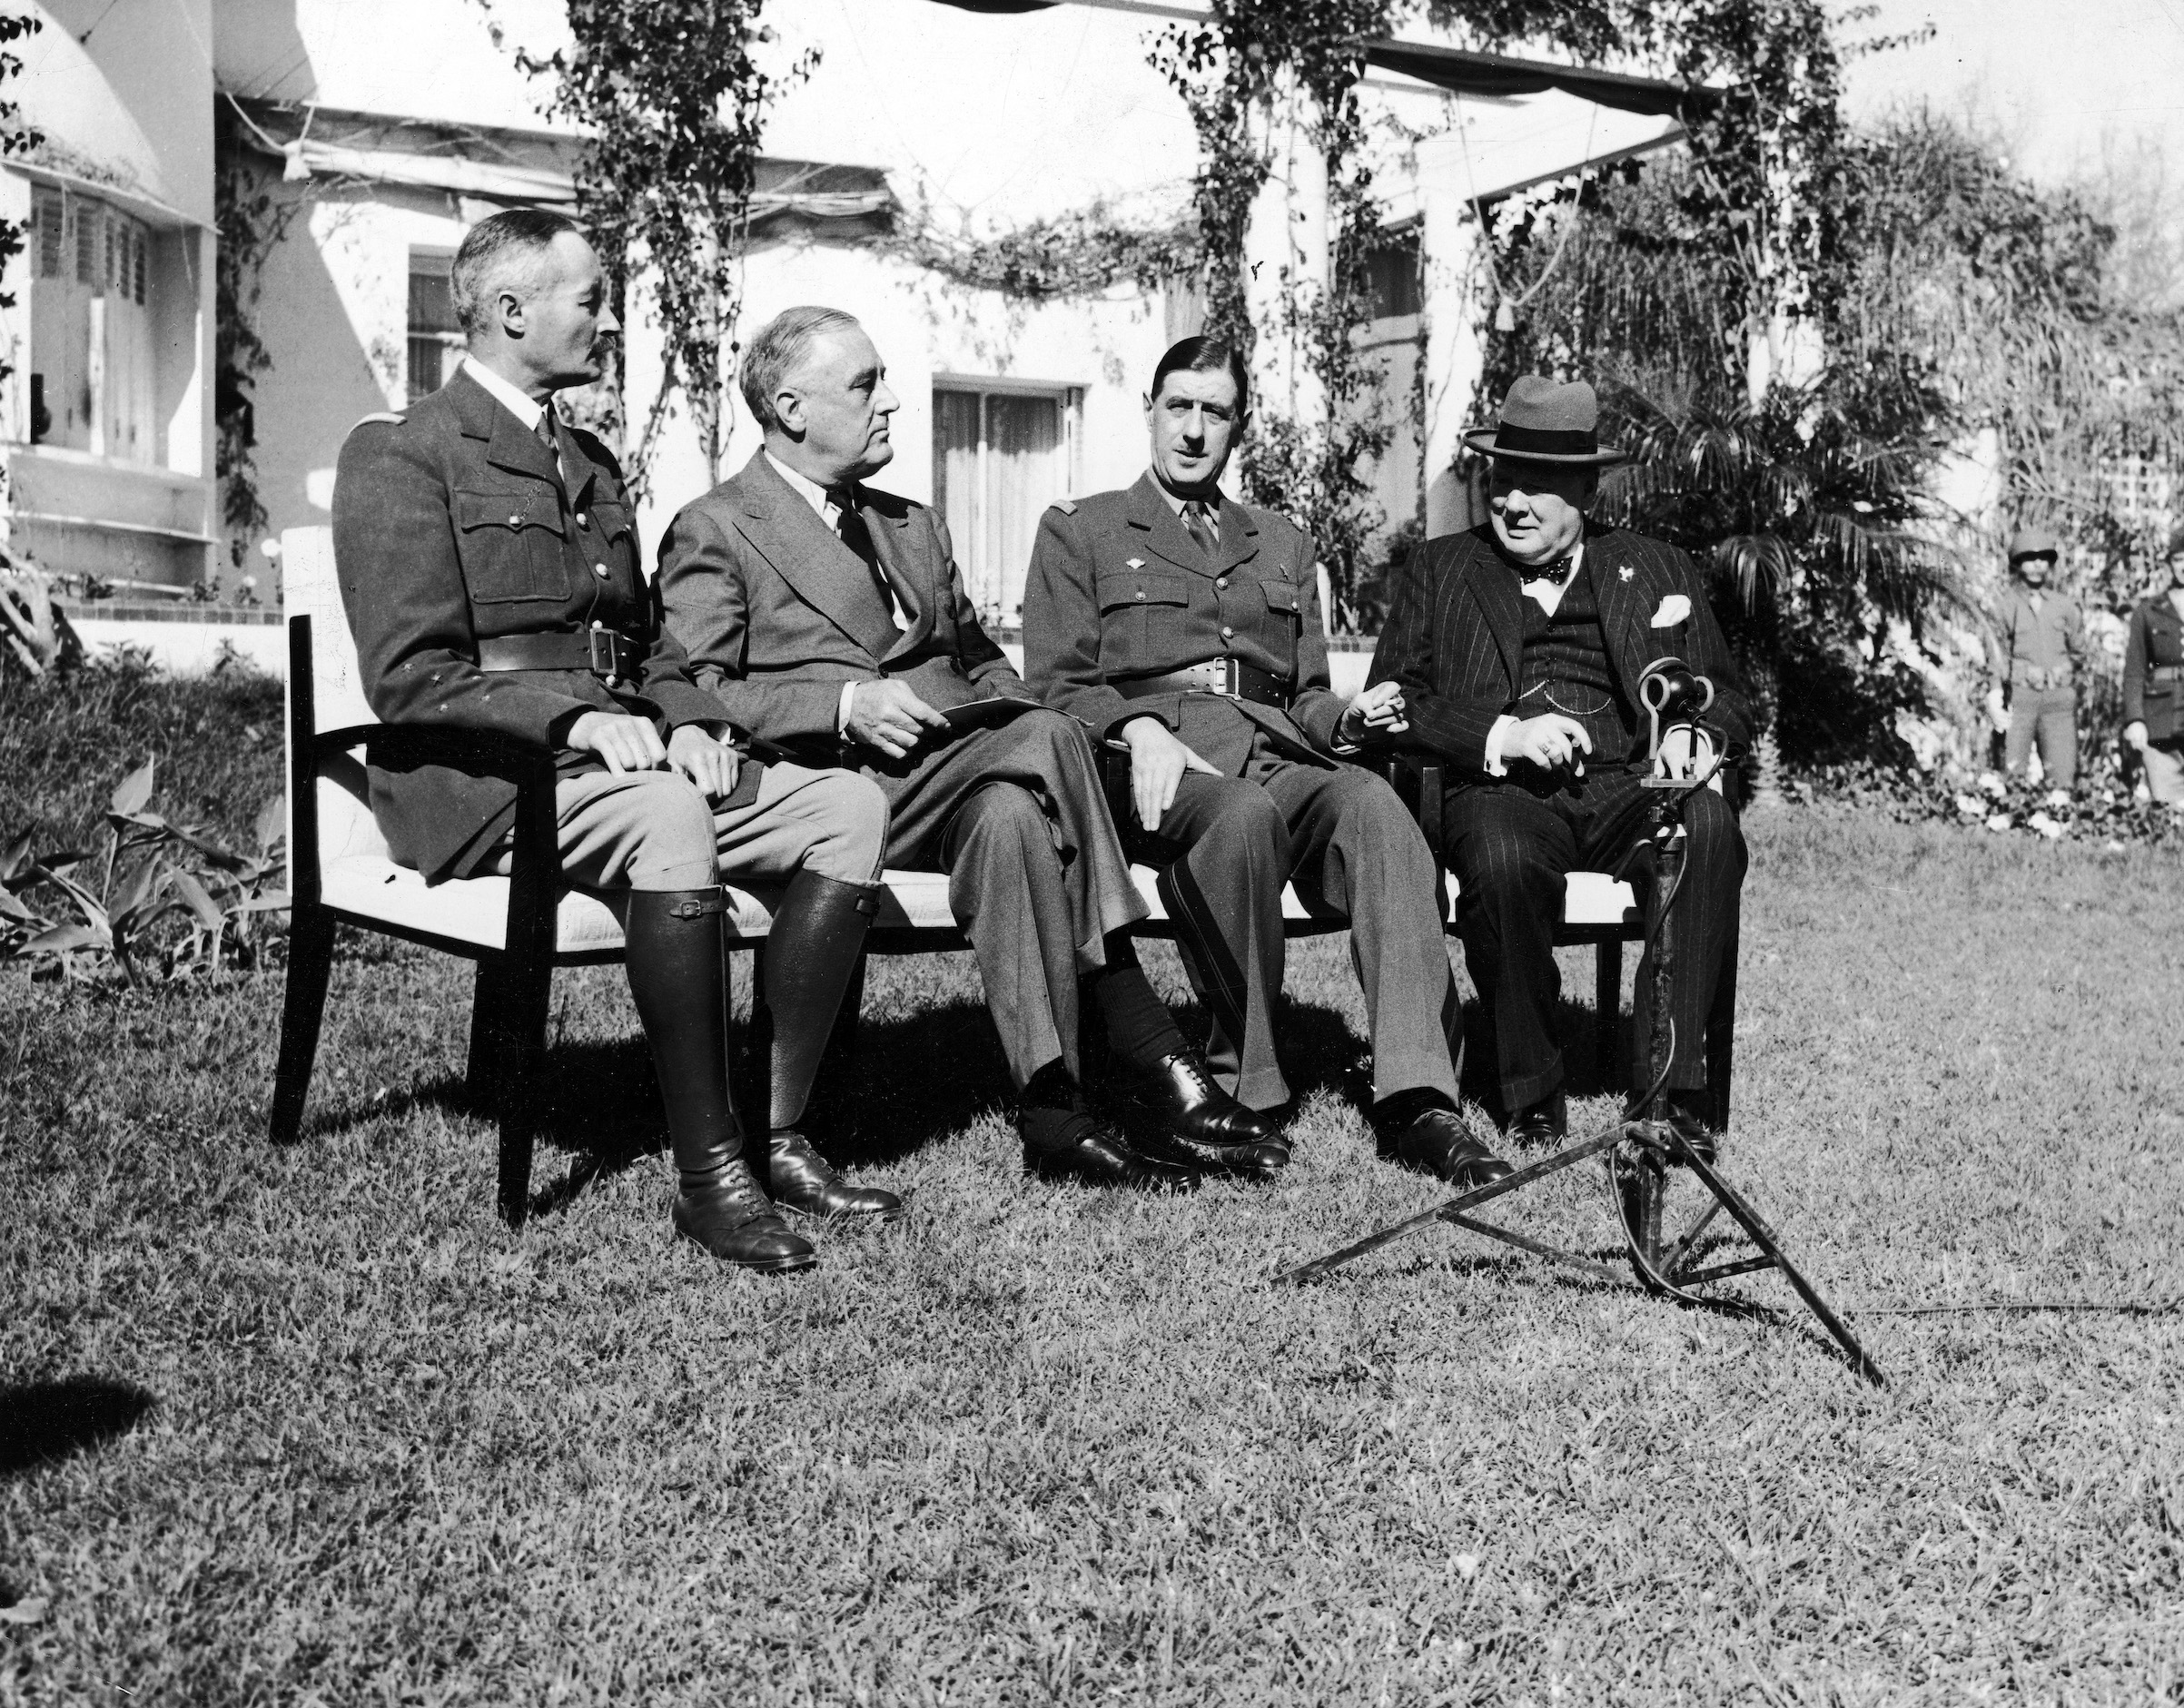 (L-R) French General Henri Giraud, President Franklin D. Roosevelt, French General Charles De Gaulle and British PM Winston Churchill while attending the conference in Casablanca.